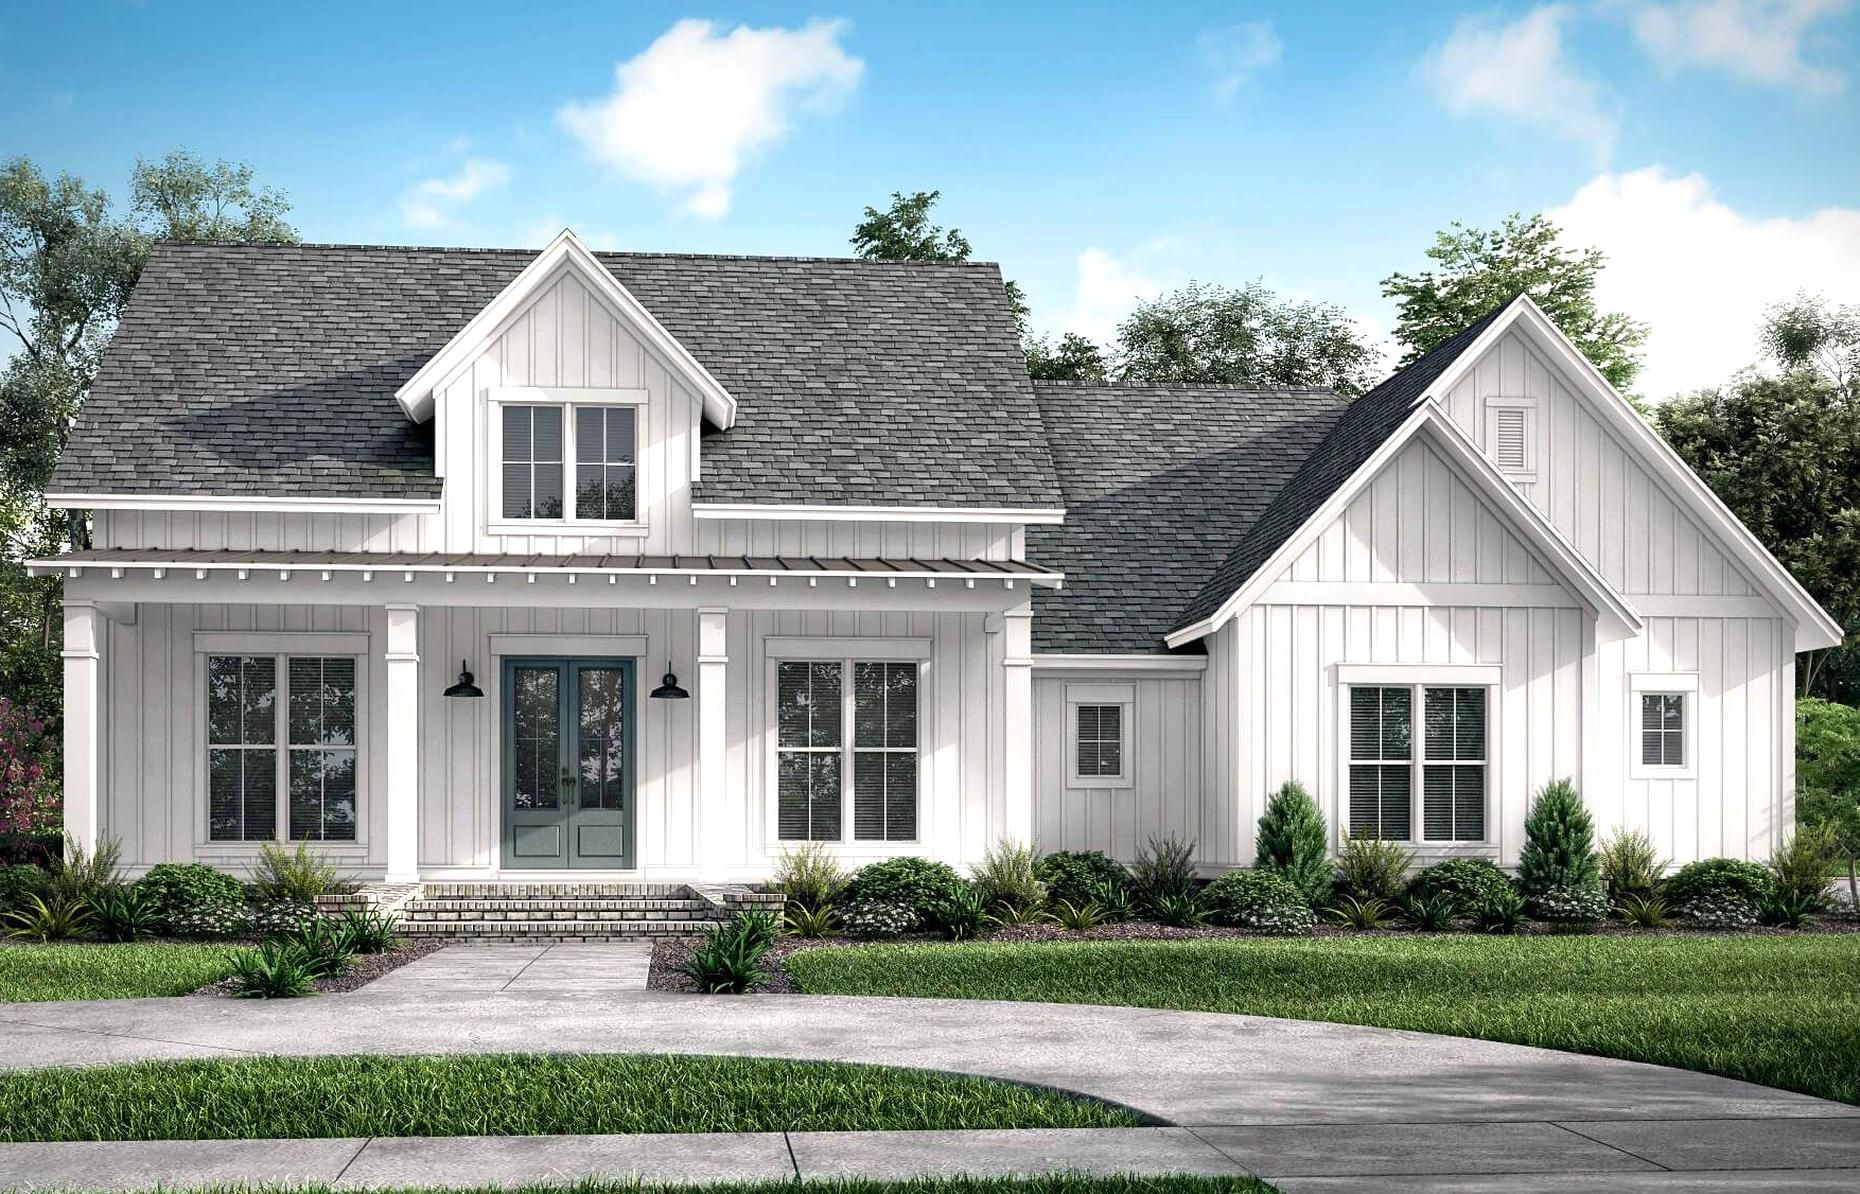 Hope Df House Plan House Plan Zone In 2020 Craftsman Style House Plans Modern Farmhouse Plans Farmhouse Plans